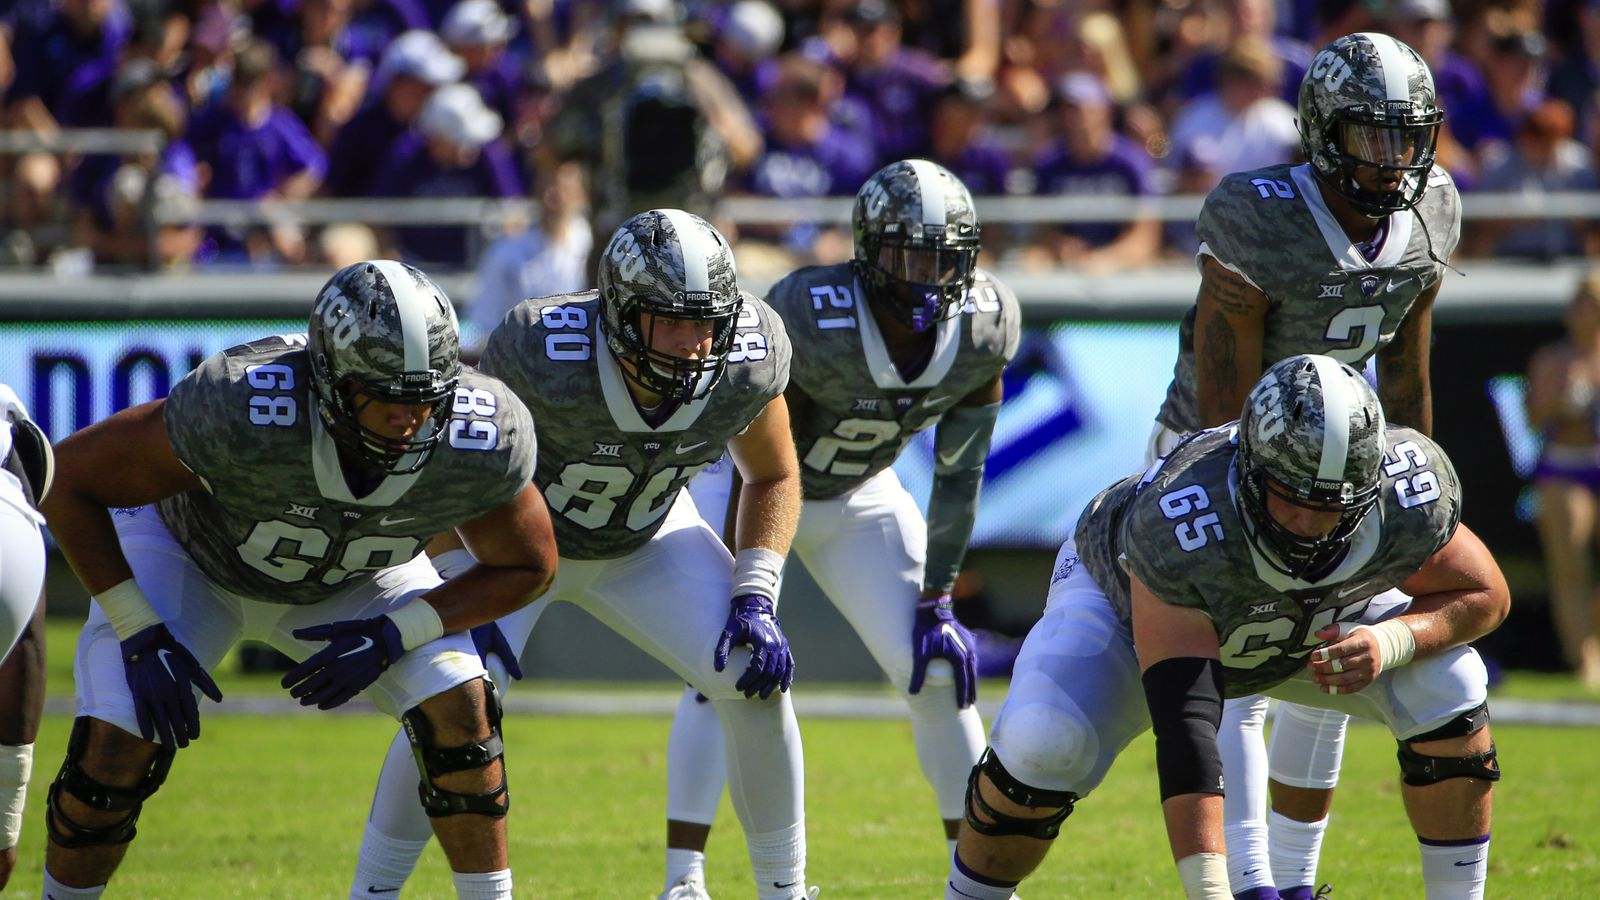 TCU Football tcufootball  Instagram photos and videos